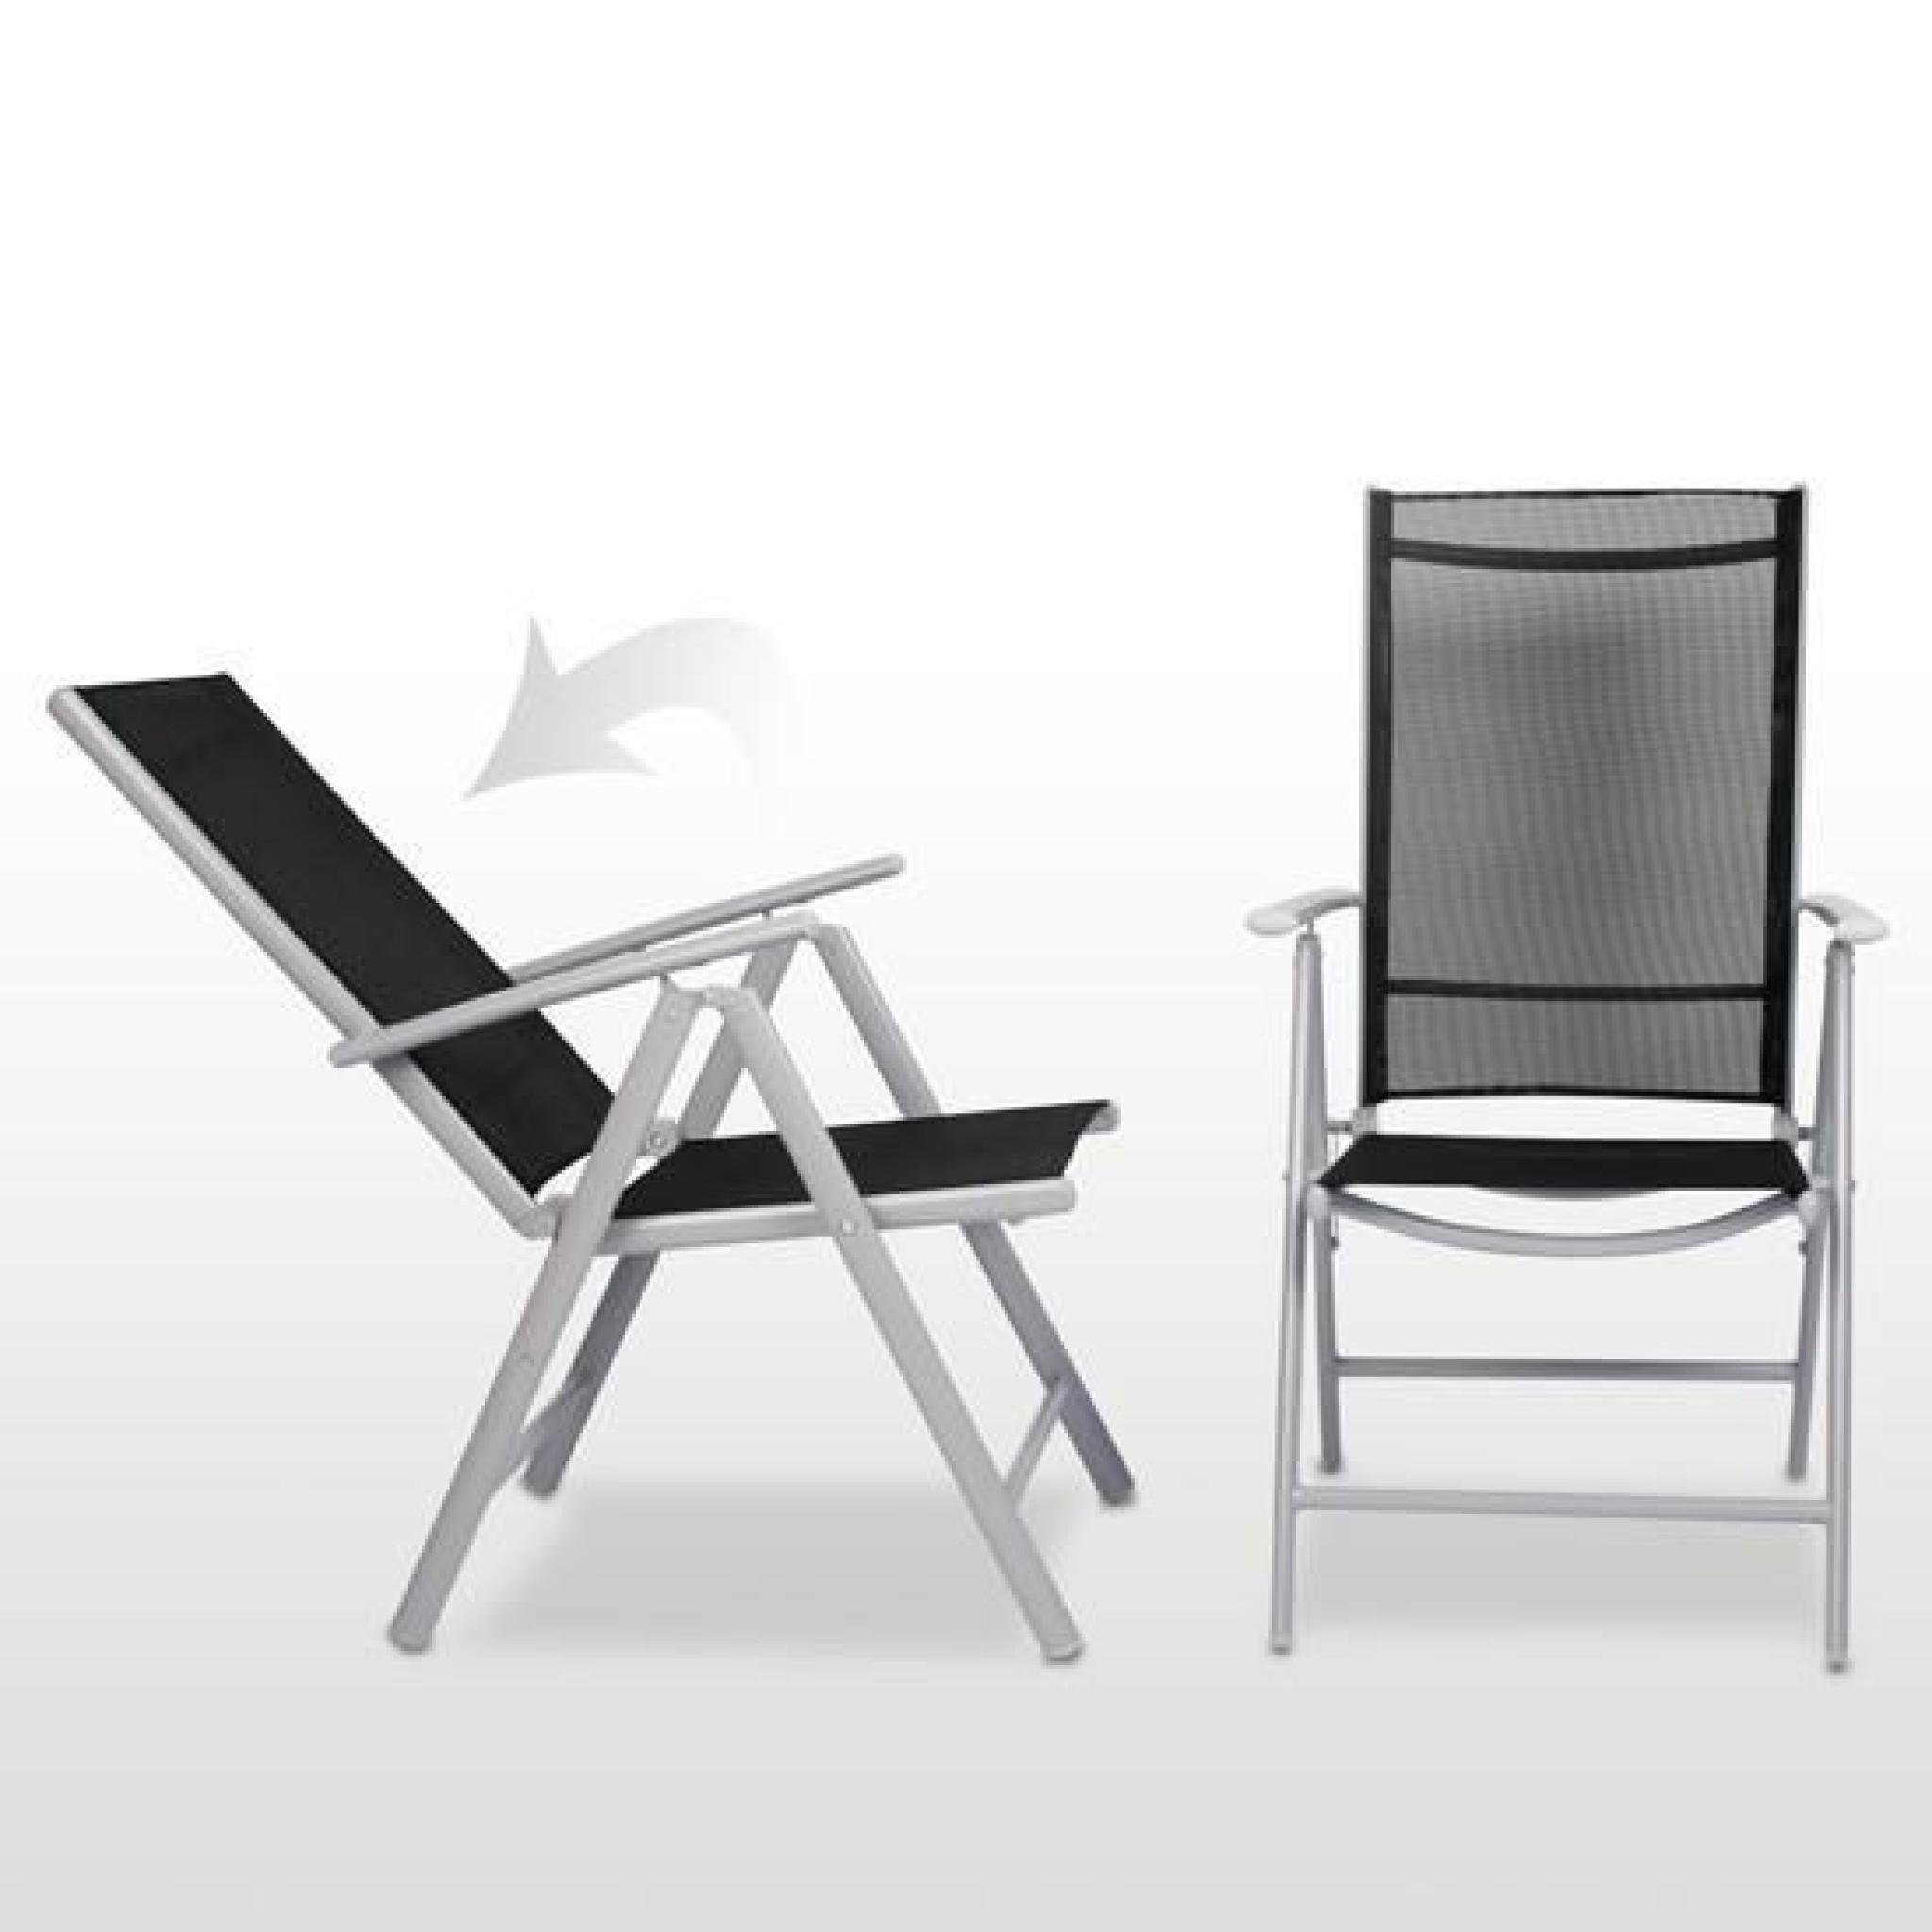 table chaises jardin aluminium achat vente salon de jardin en aluminium pas cher. Black Bedroom Furniture Sets. Home Design Ideas